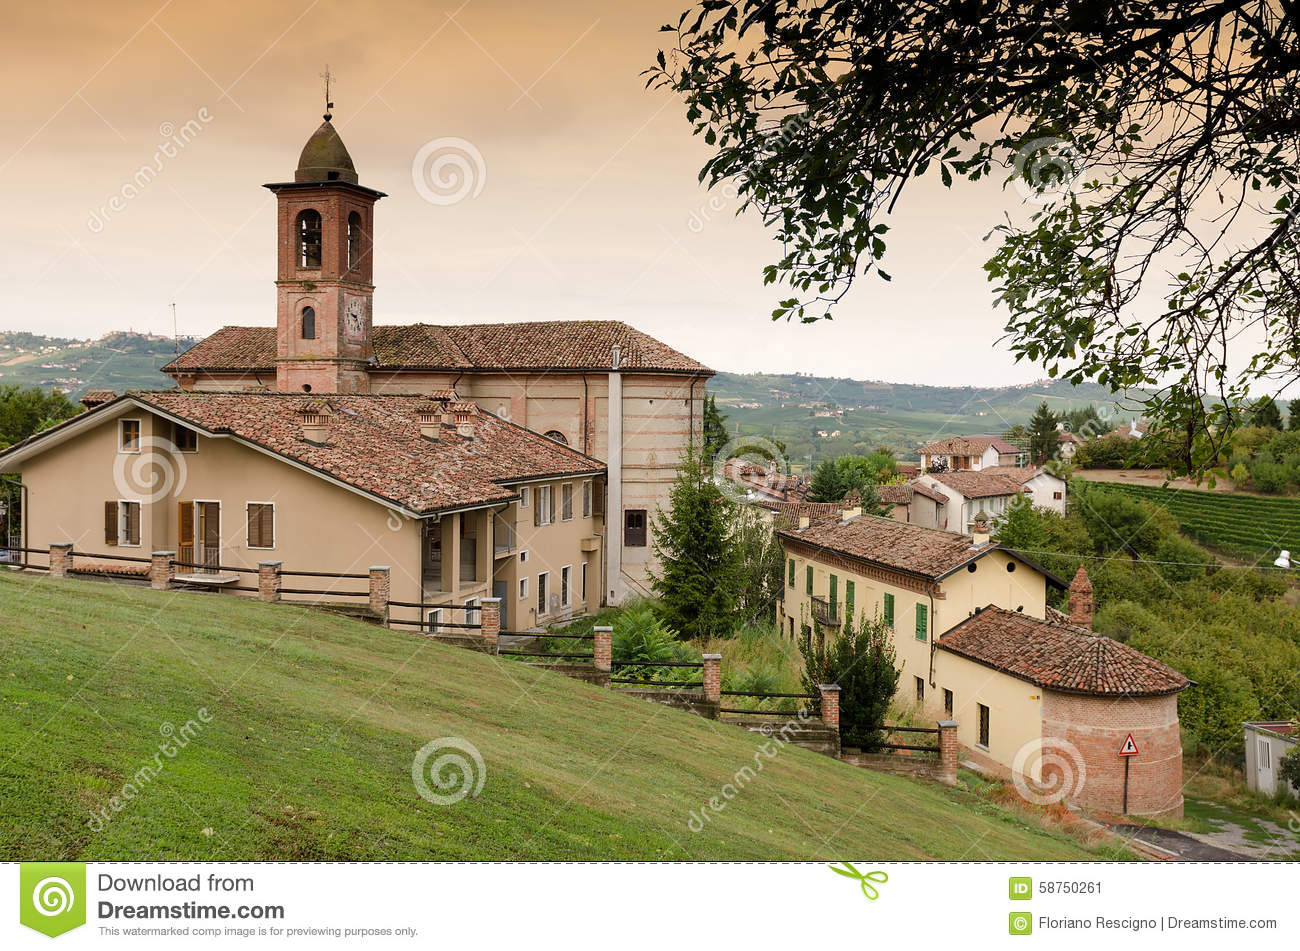 Small Italian village with church